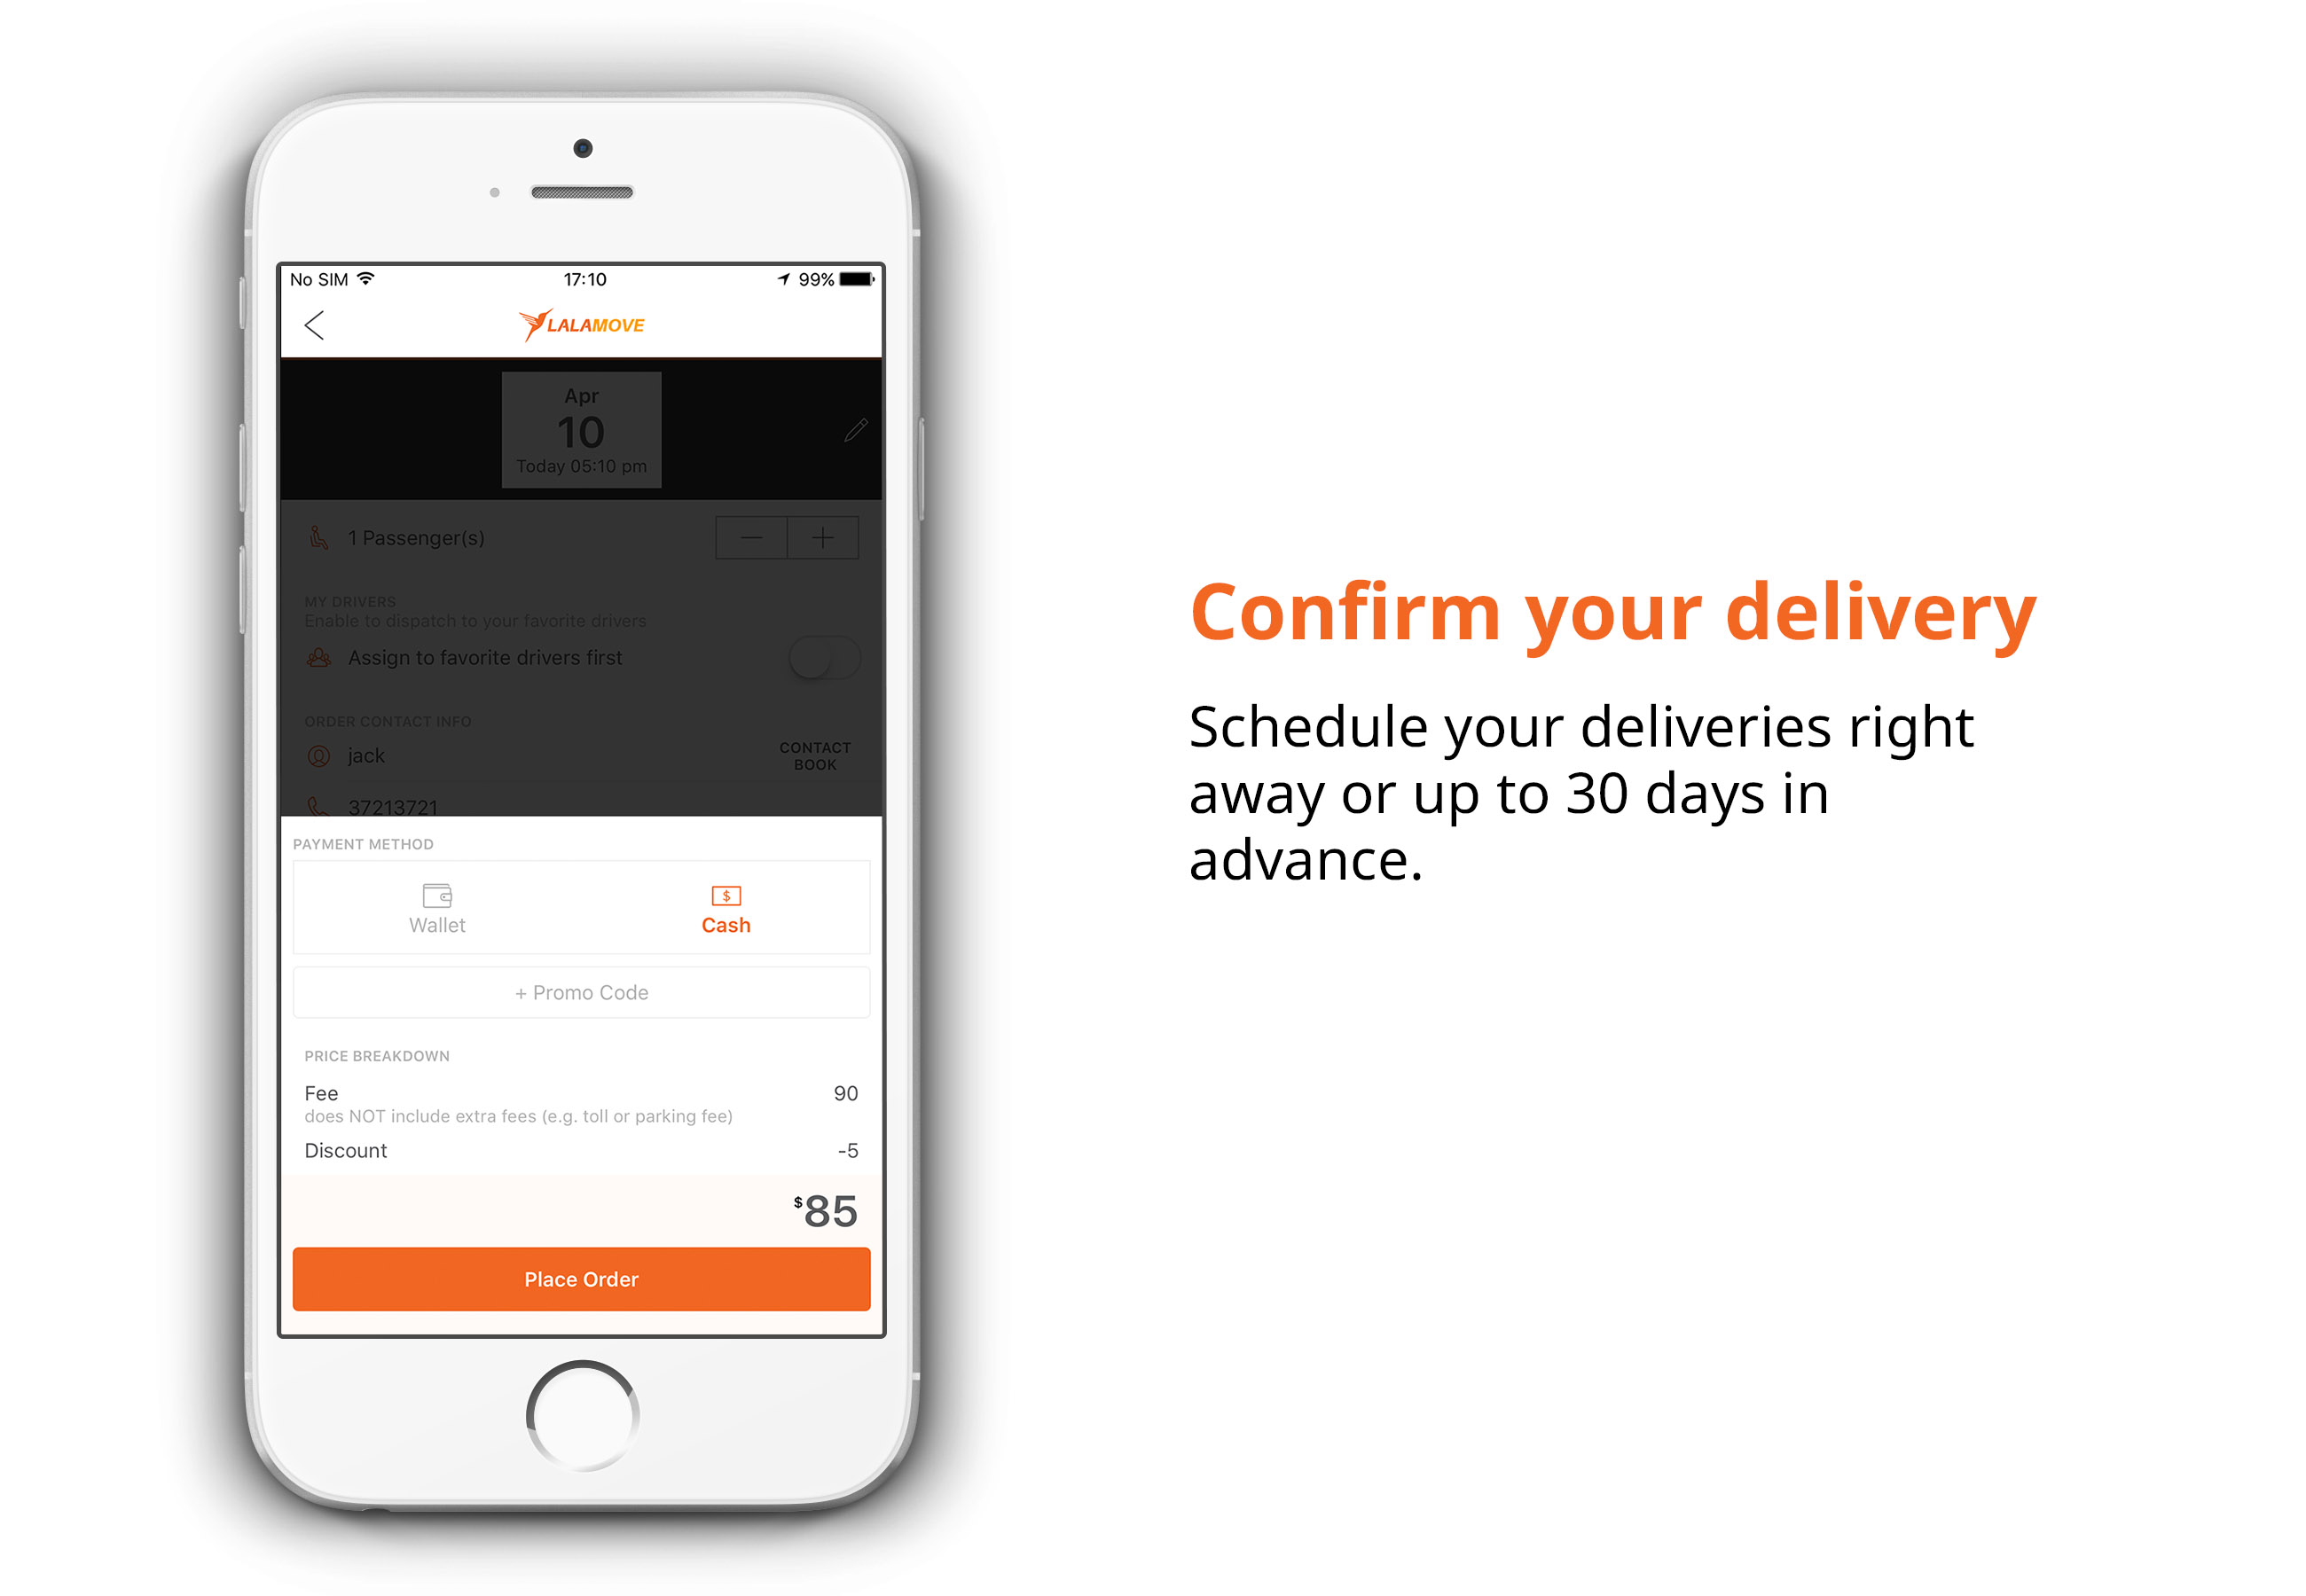 Confirm your delivery